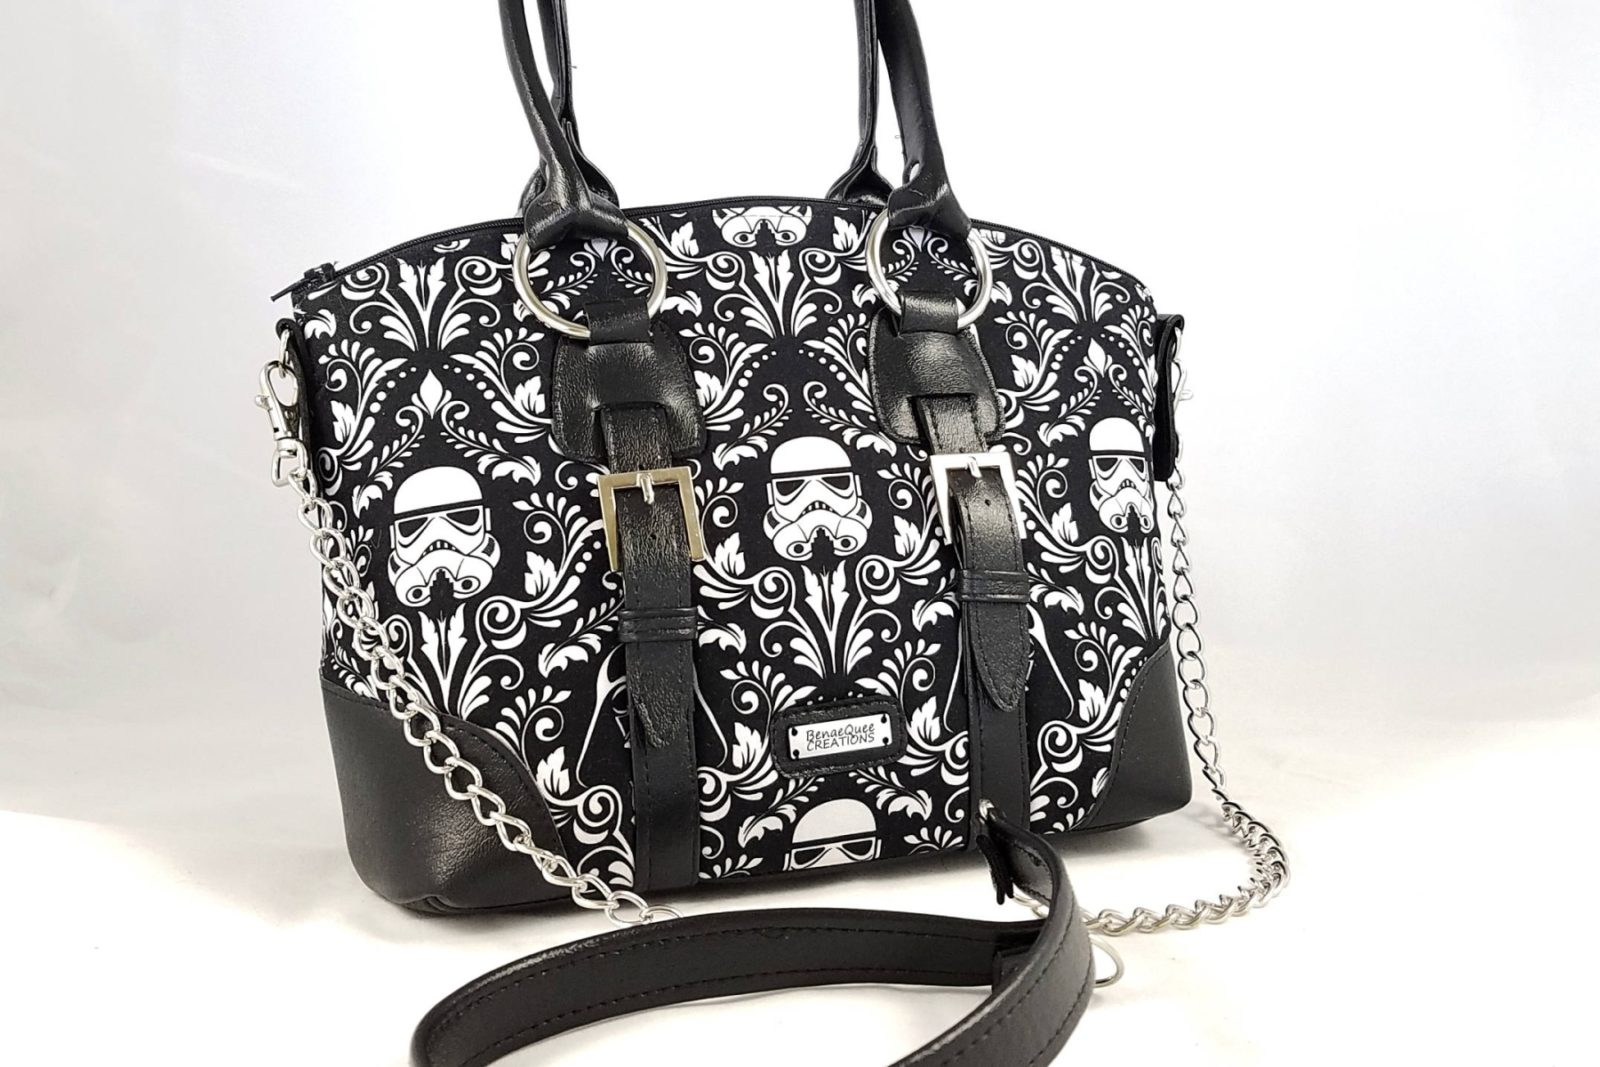 Stormtrooper Handbag by BenaeQuee Creations